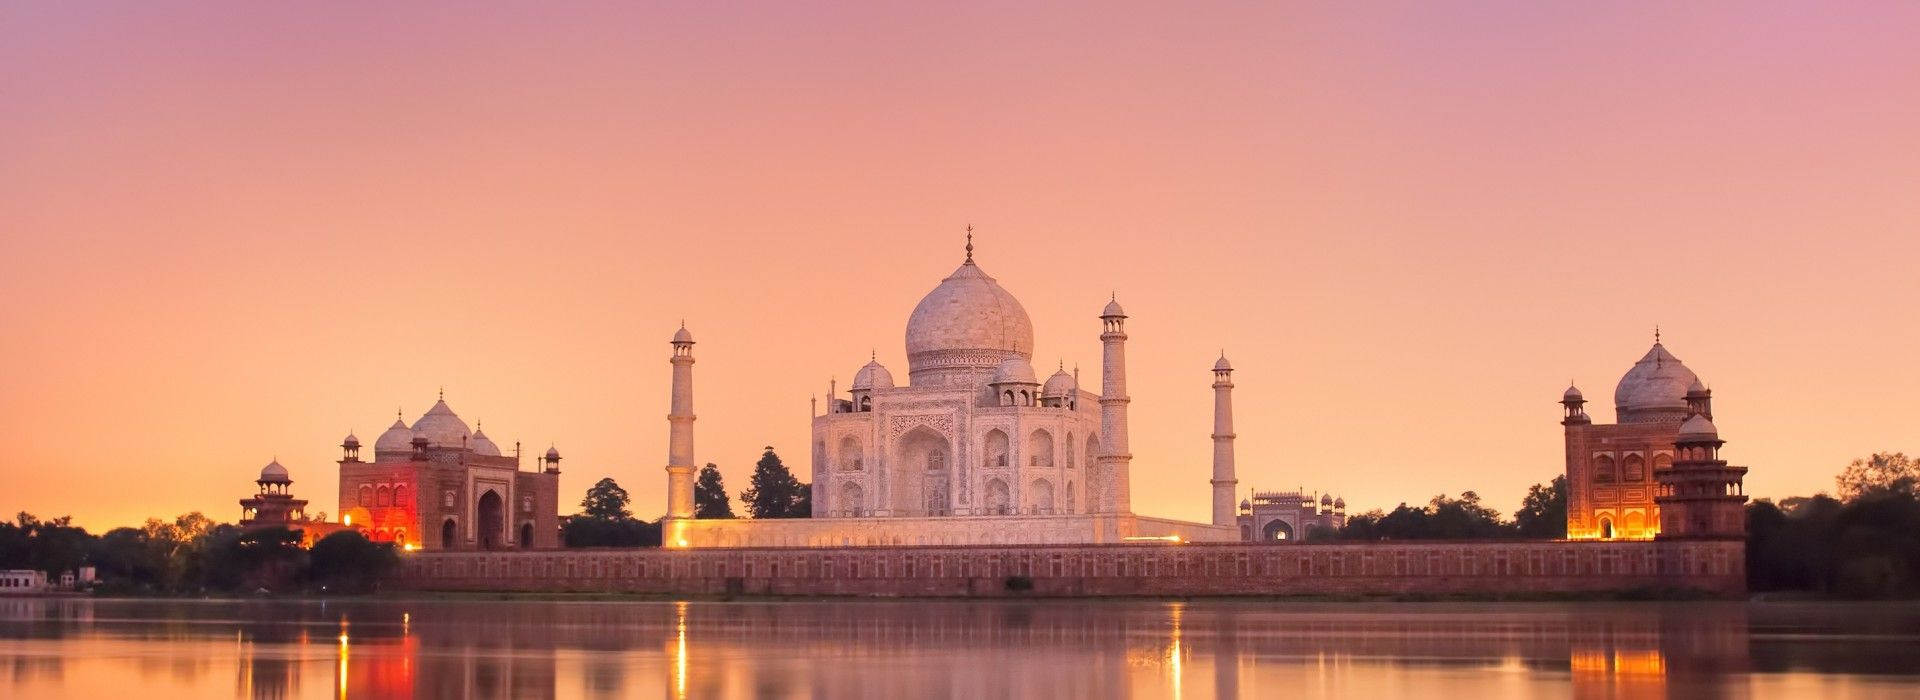 Sightseeing, attractions, culture and history Tours in Mumbai